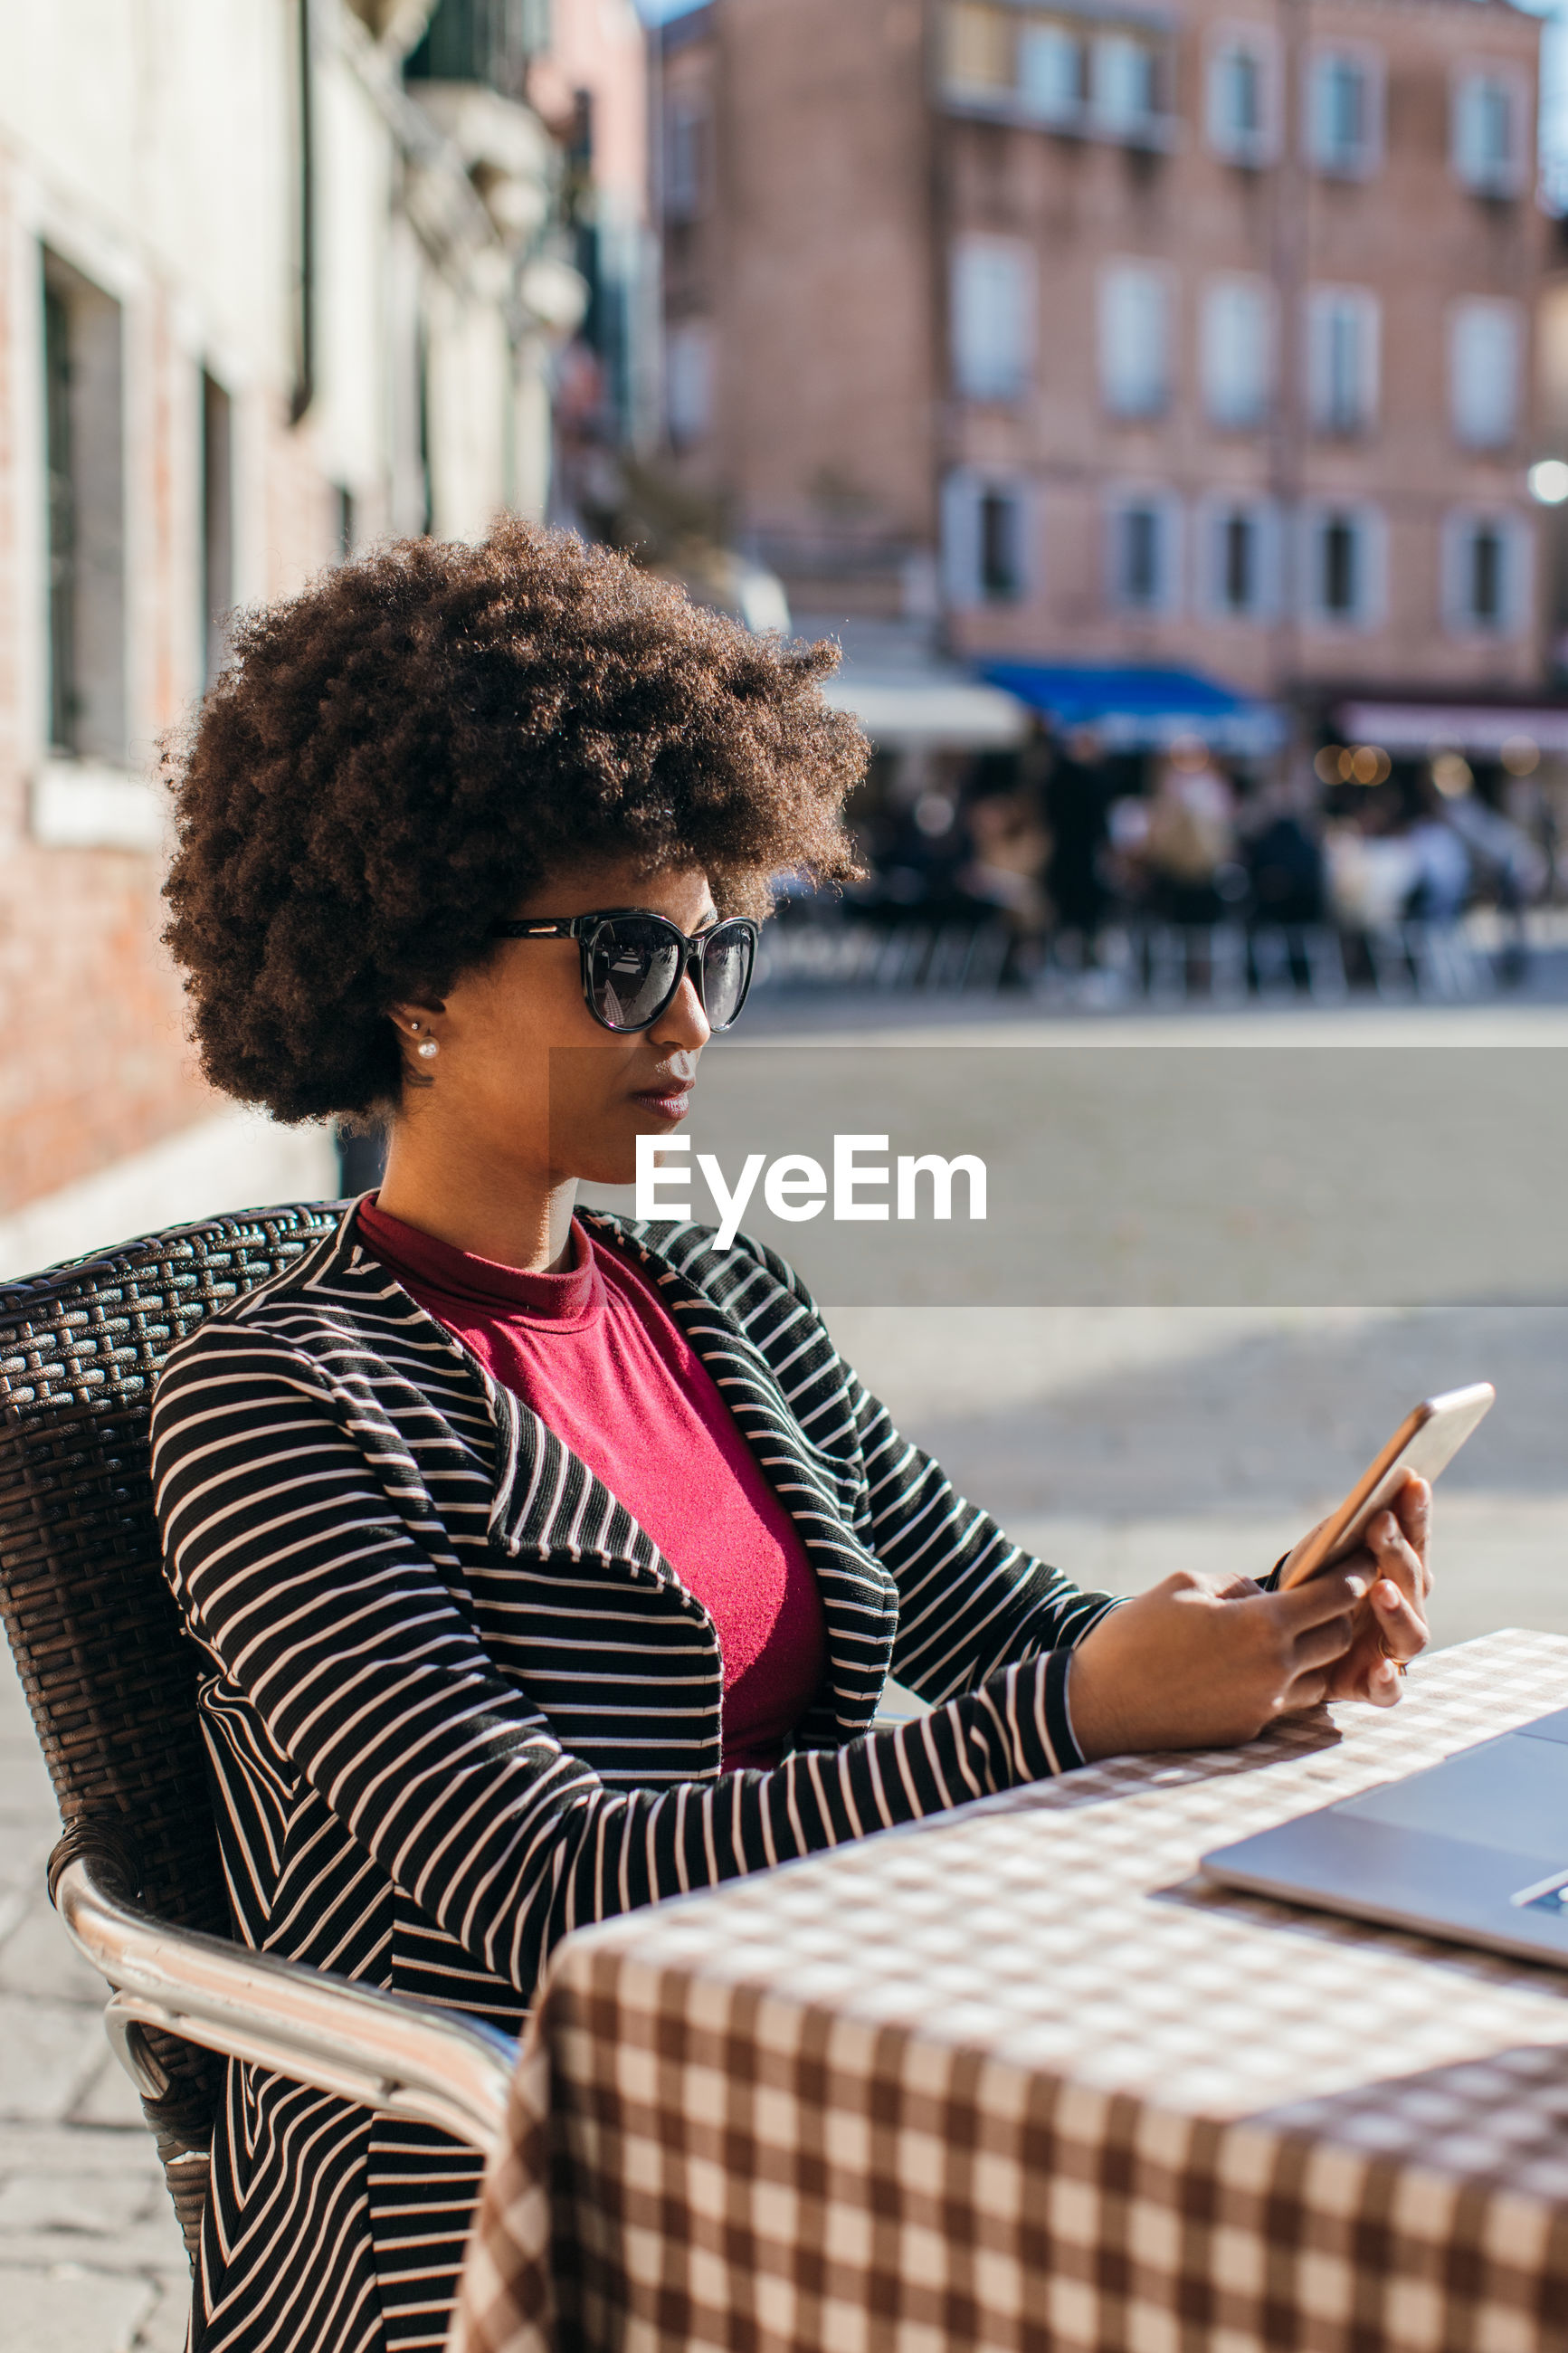 YOUNG WOMAN USING PHONE ON CITY